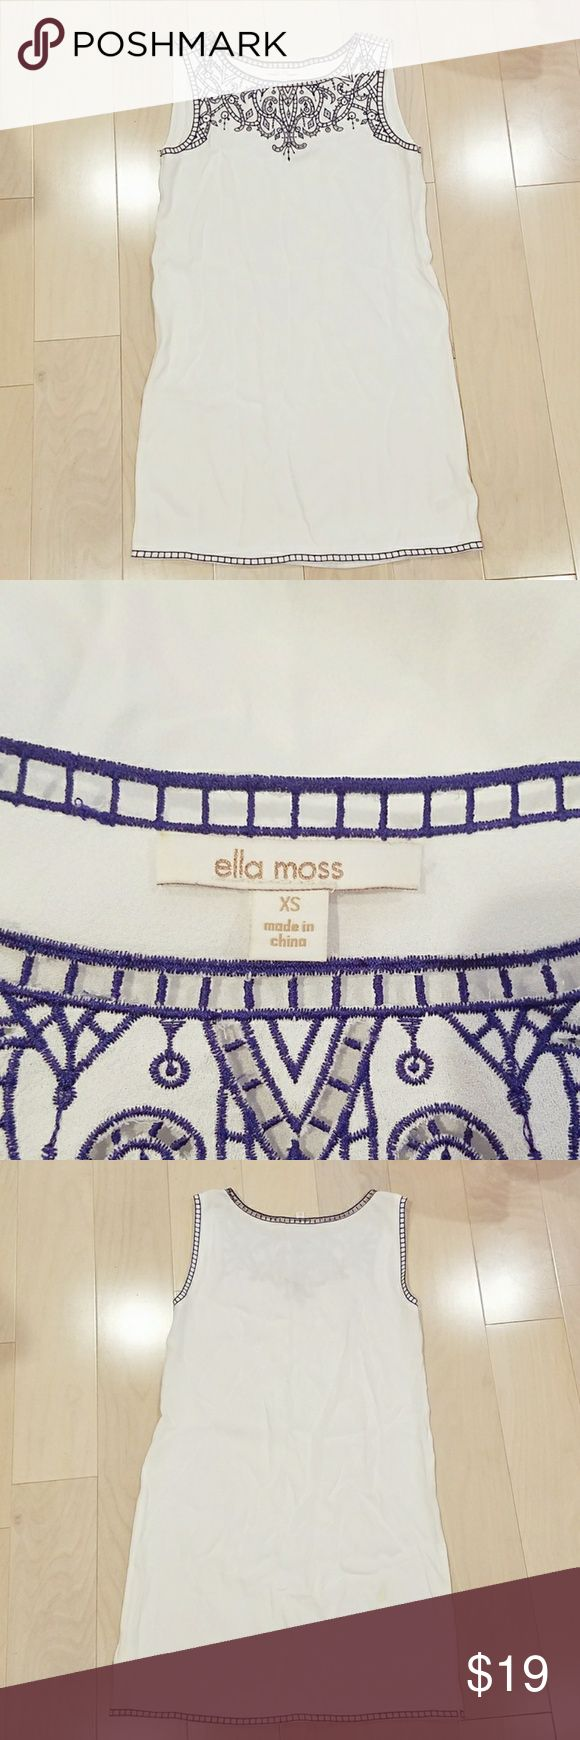 Ella Moss dress Some stains on back otherwise good  condition Ella Moss Dresses